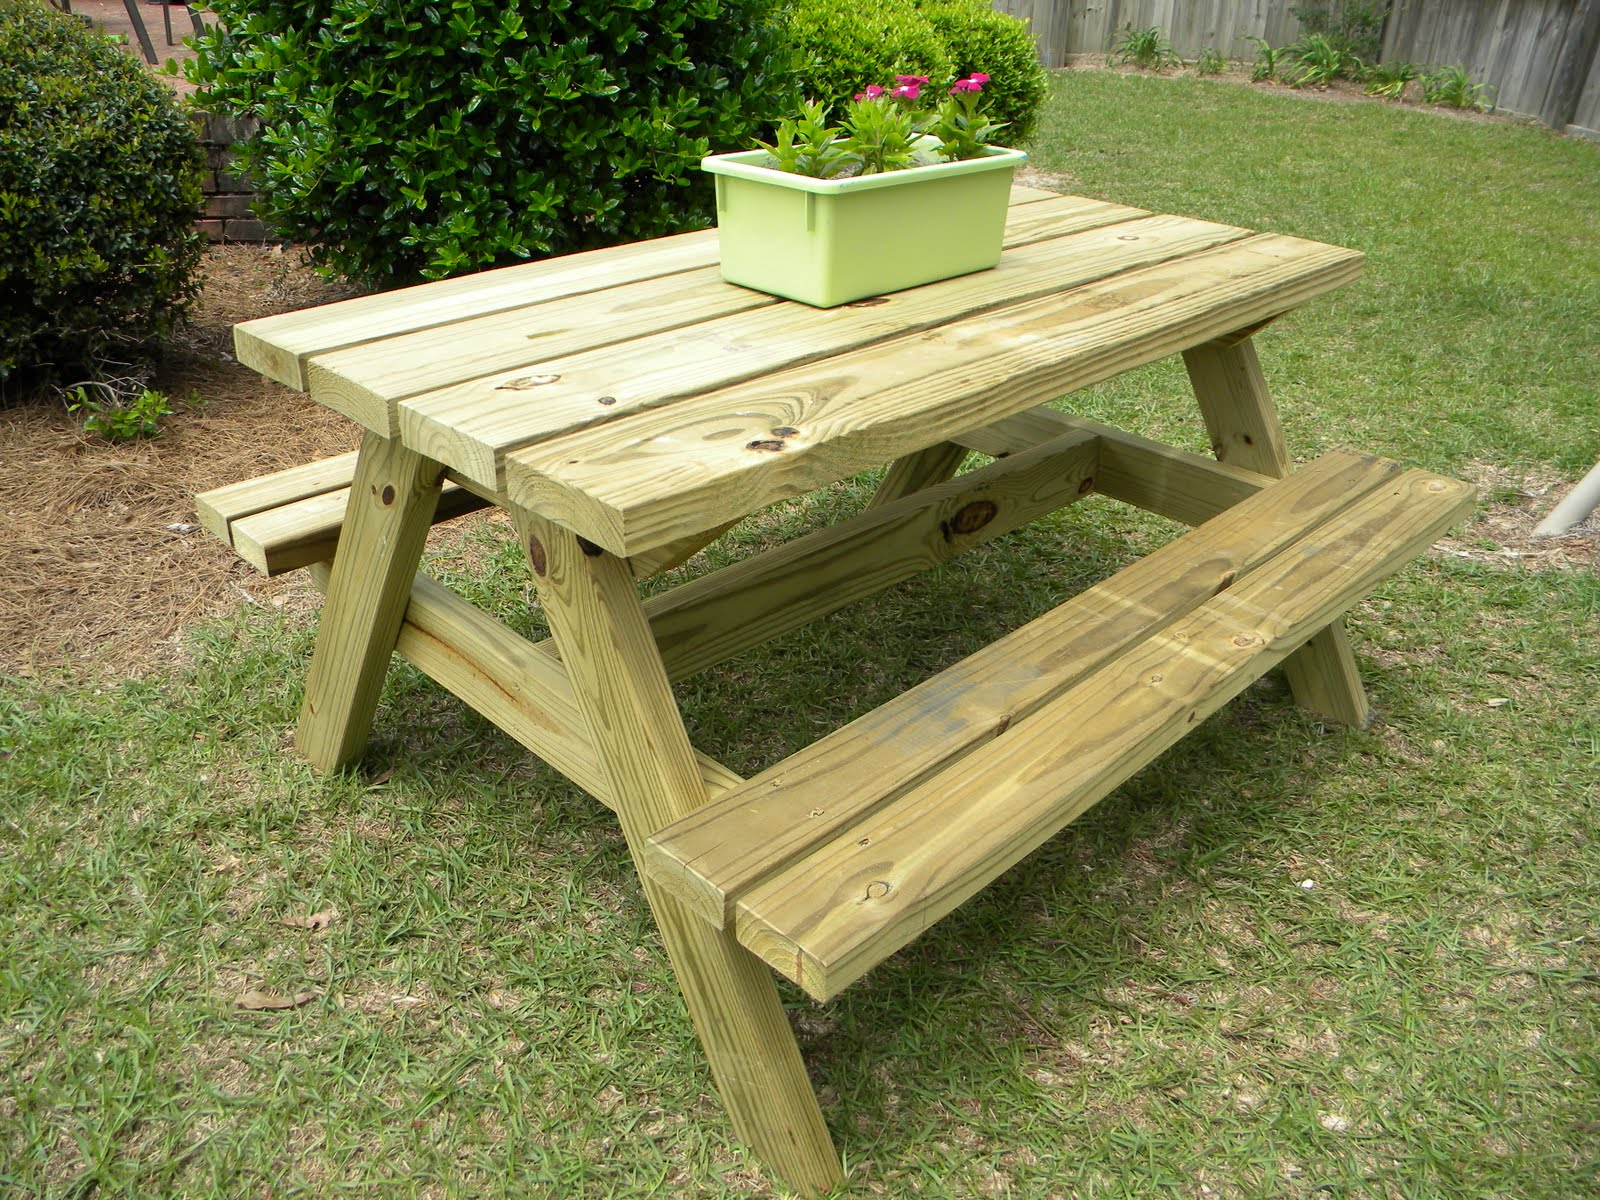 Guide to get picnic table with built in cooler plans the for Bancas para jardin de madera